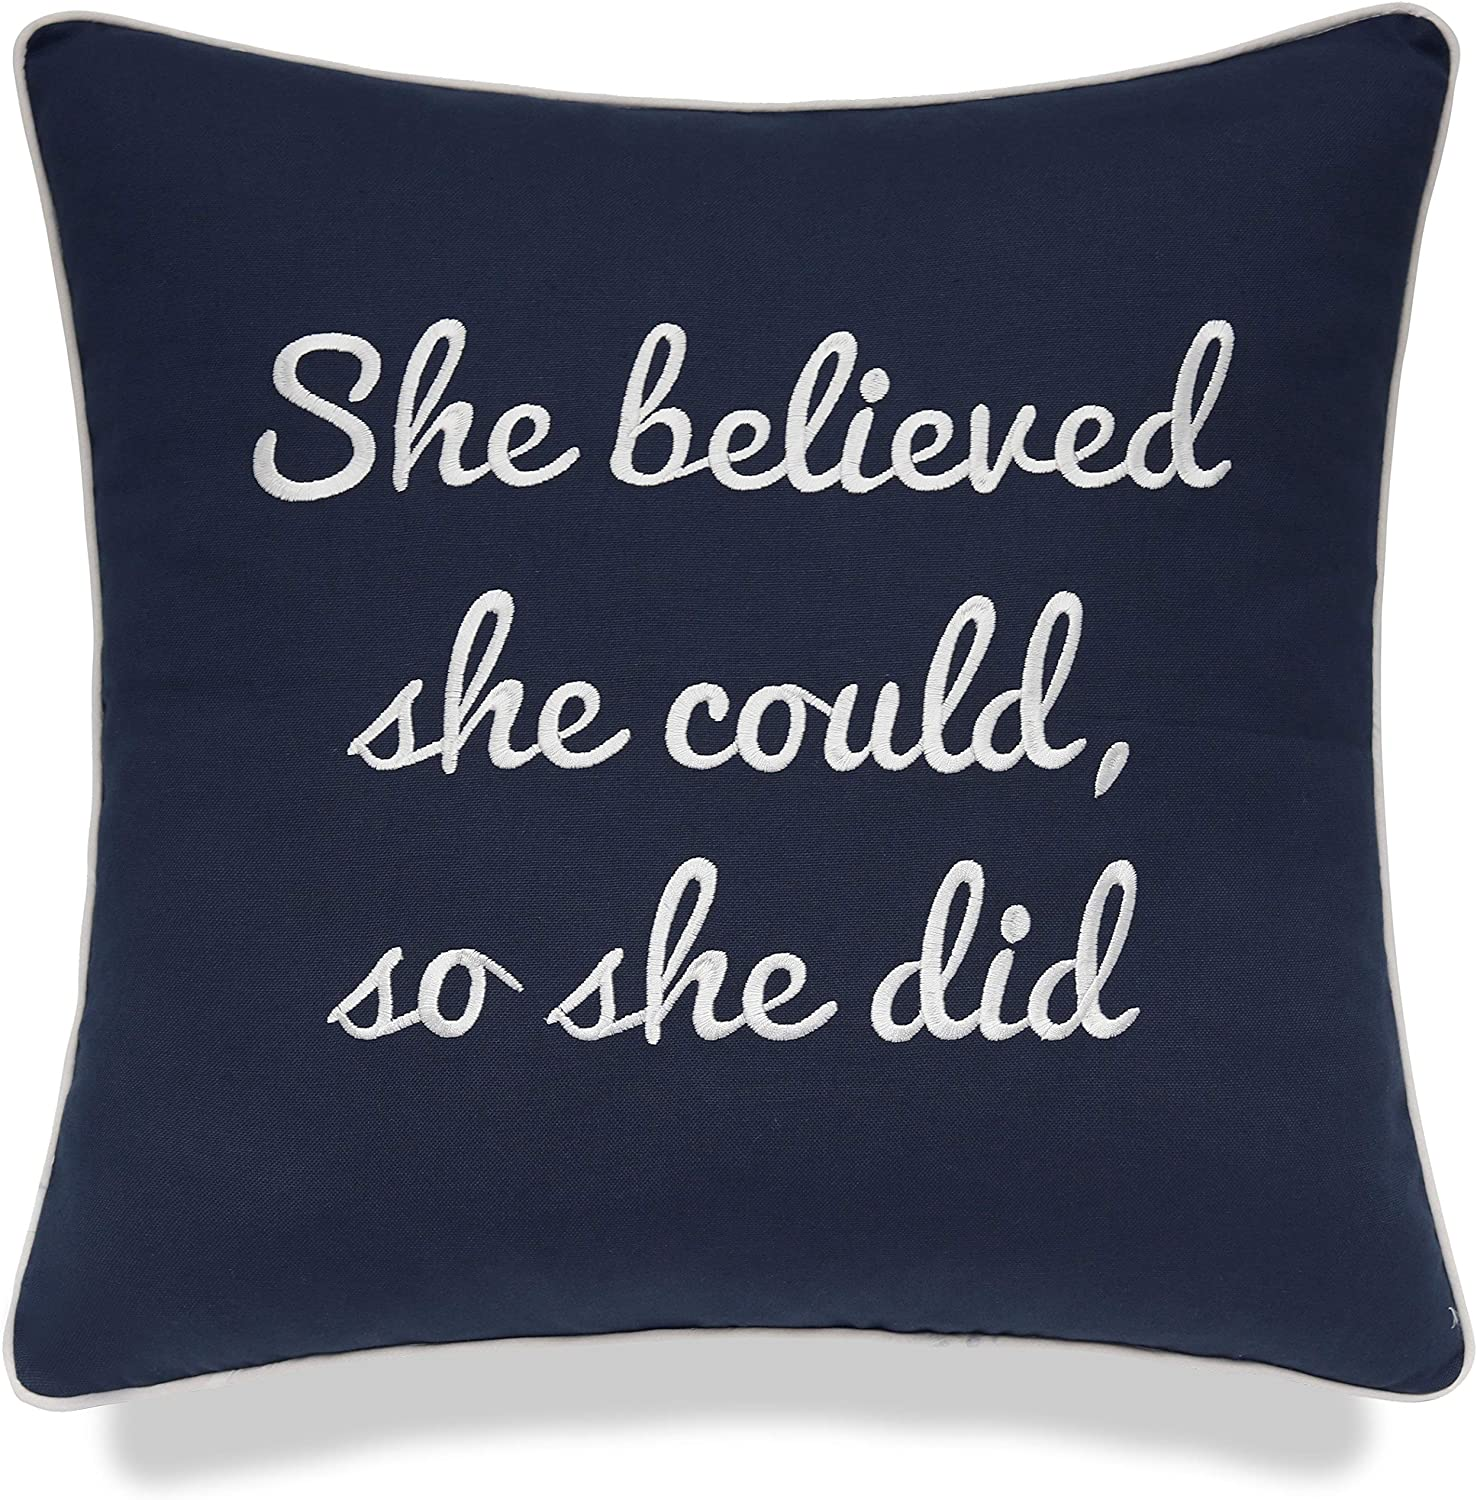 YugTex She Believed She Could So She Did Cotton Embroidered Decorative Square Accent Pillow Cover - Motivational Decor, Graduation Gift - 18x18 Inches, Navy Blue